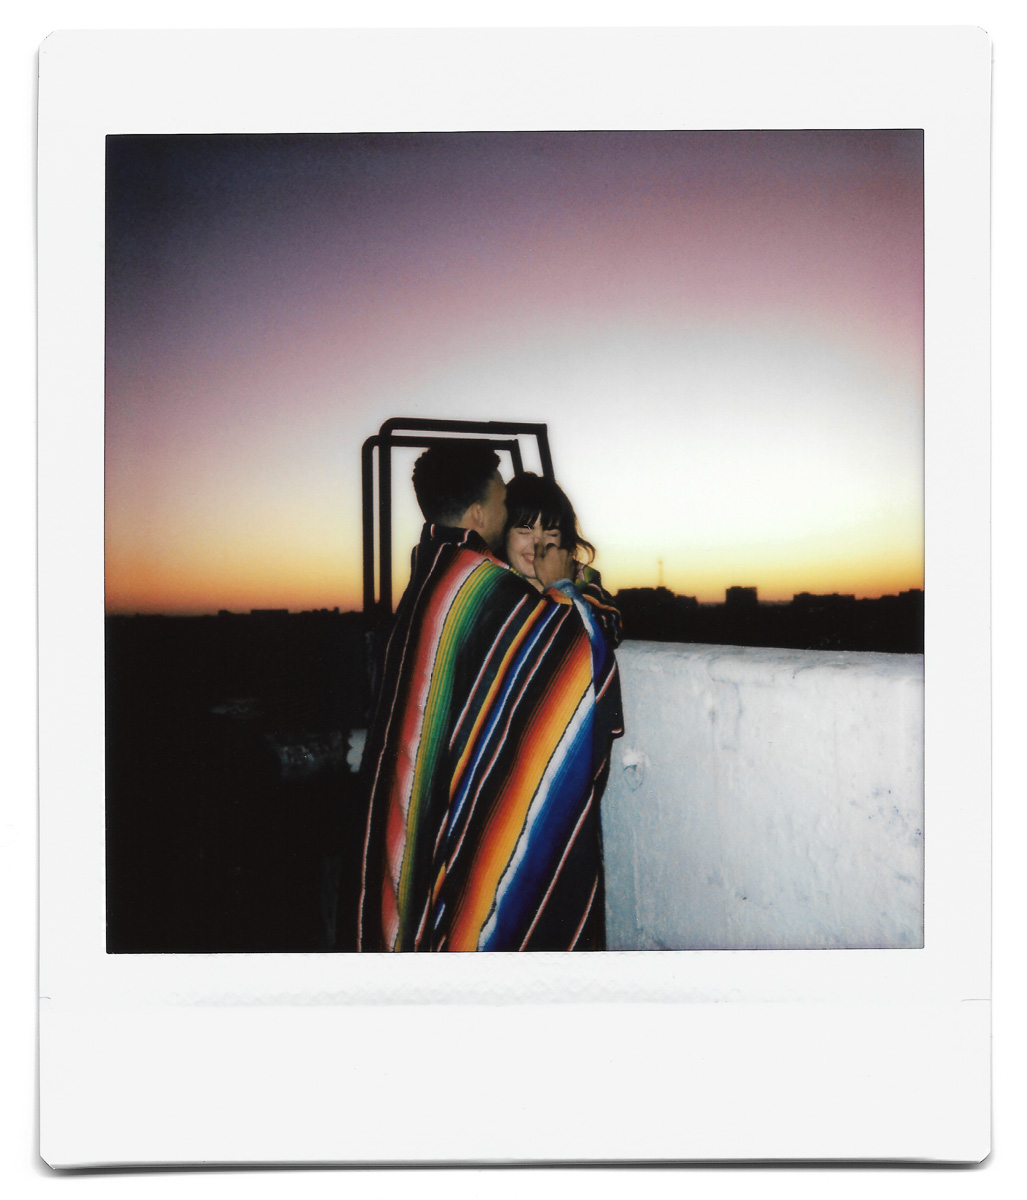 JulianLoveInstax005